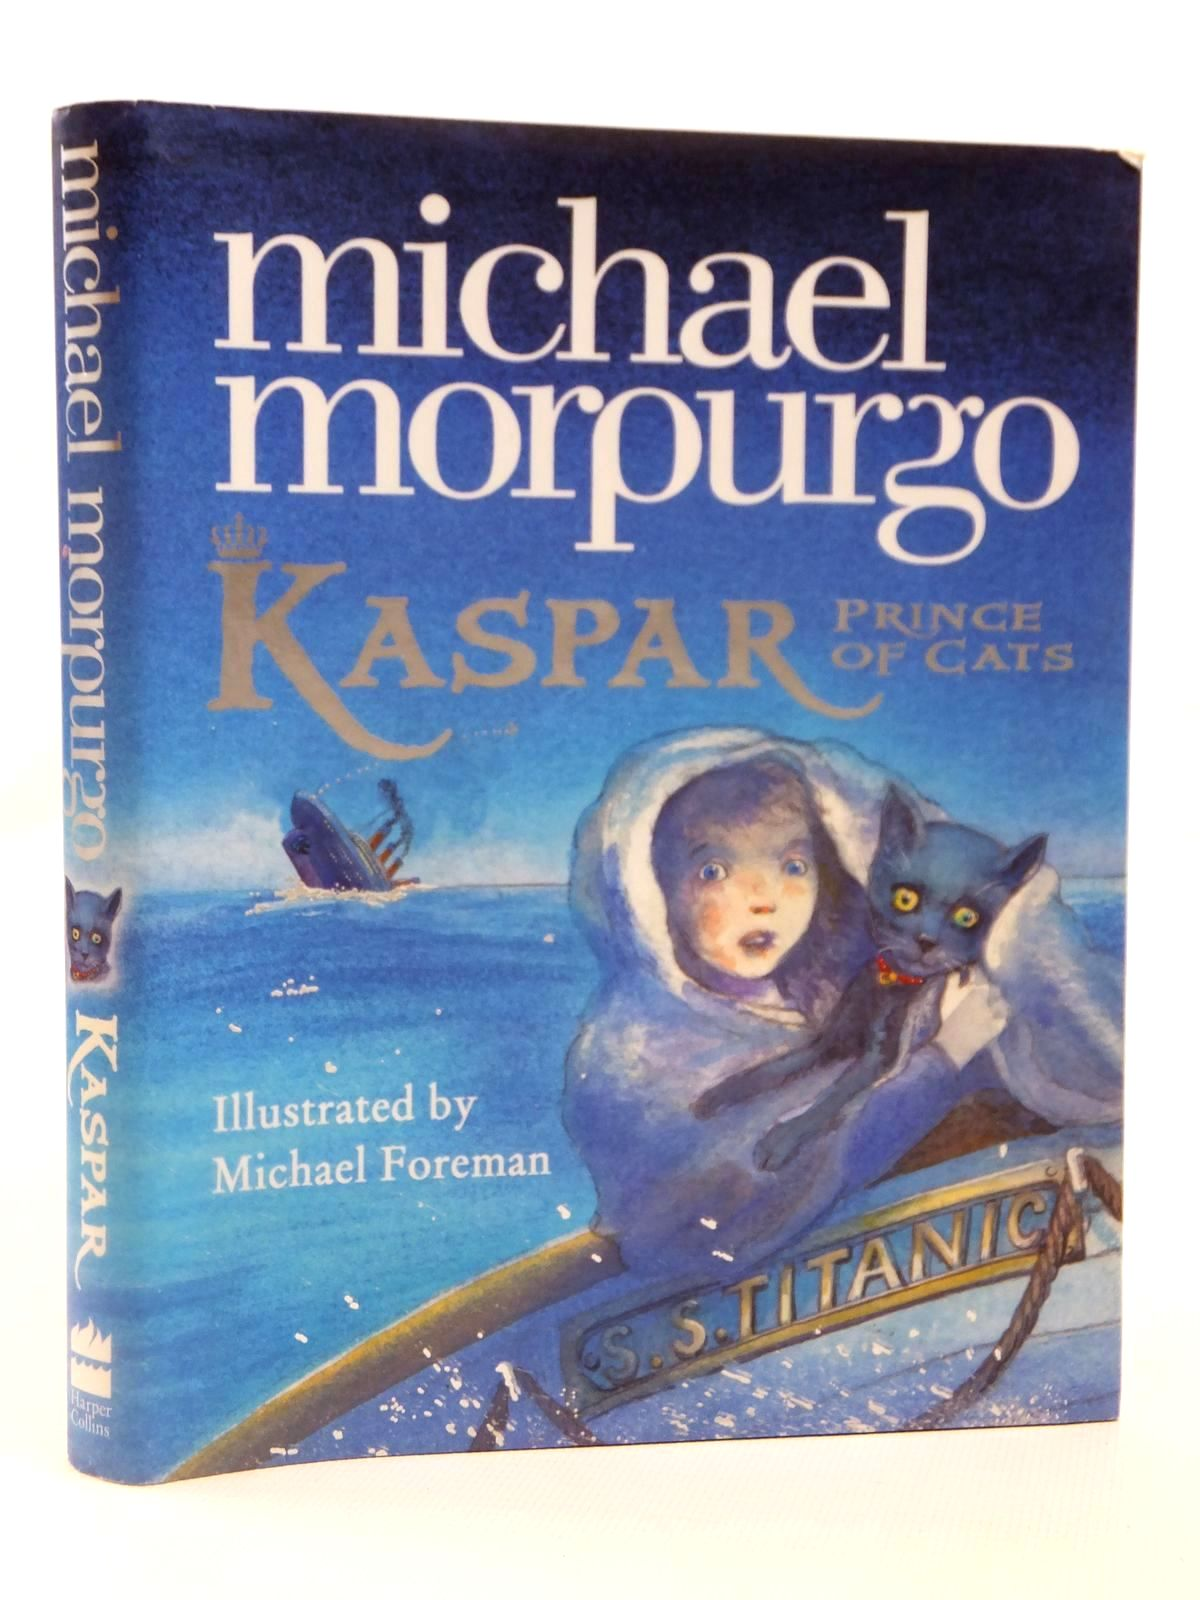 Photo of KASPAR PRINCE OF CATS written by Morpurgo, Michael illustrated by Foreman, Michael published by Harper Collins (STOCK CODE: 2122010)  for sale by Stella & Rose's Books